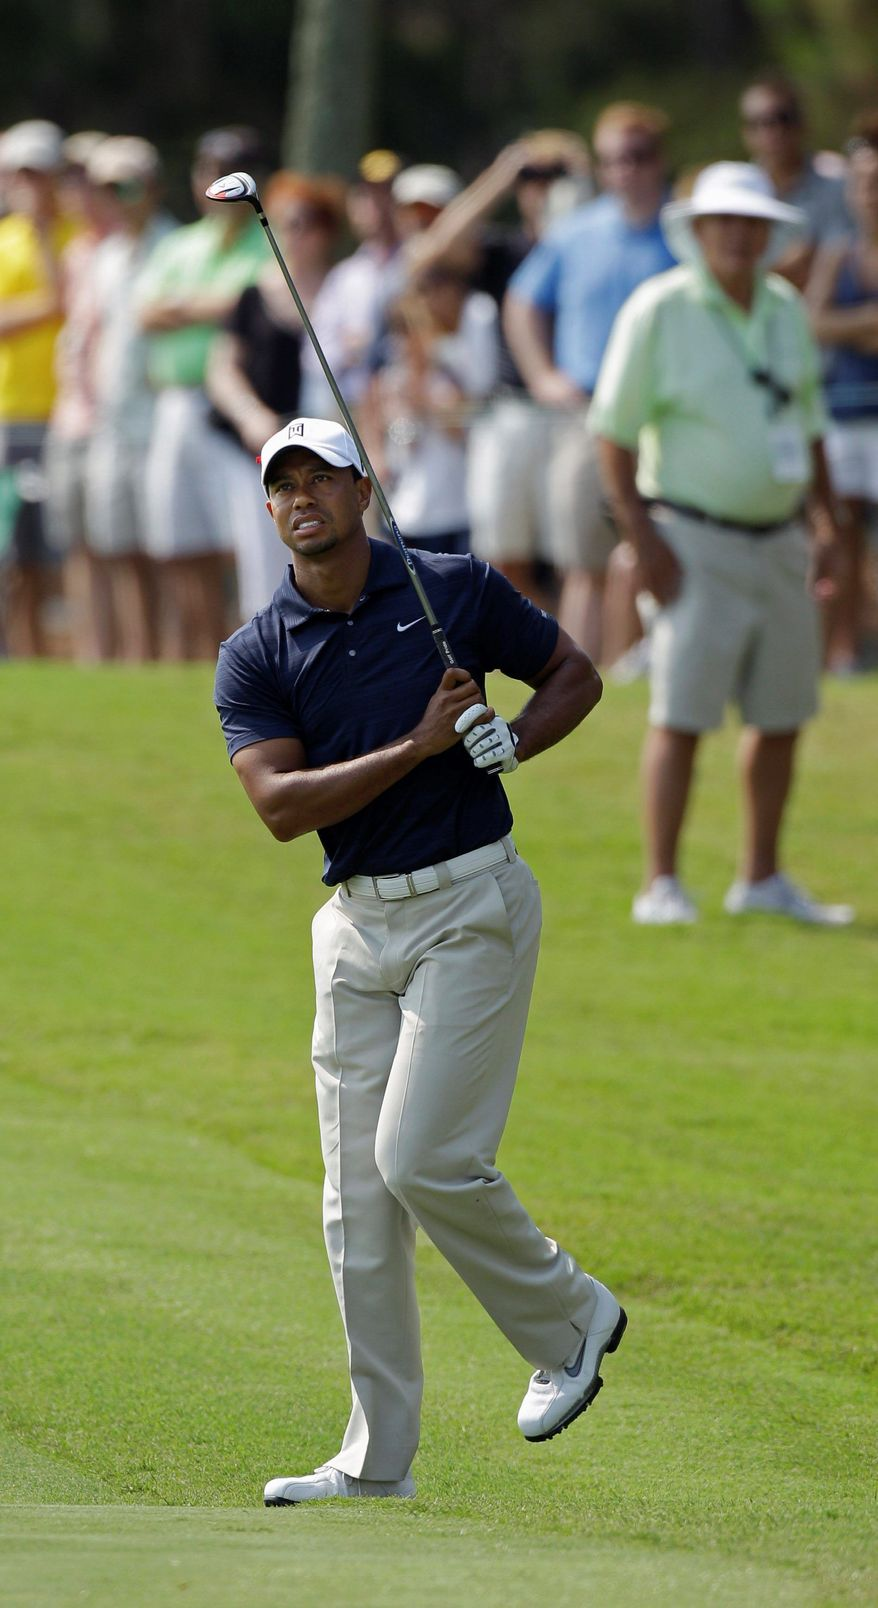 FILE - In this May 12, 2011 file photo, Tiger Woods bends his knee after his second shot on the ninth hole before withdrawing in the first round of The Players Championship golf tournament in Ponte Vedra Beach, Fla. Injuries to his left knee and Achilles' are bad enough that Woods decided Tuesday, June 7, 2011, to skip the U.S. Open for the first time since 1994. The Masters is now the only major he has never missed as a pro. (AP Photo/Chris O'Meara, File)